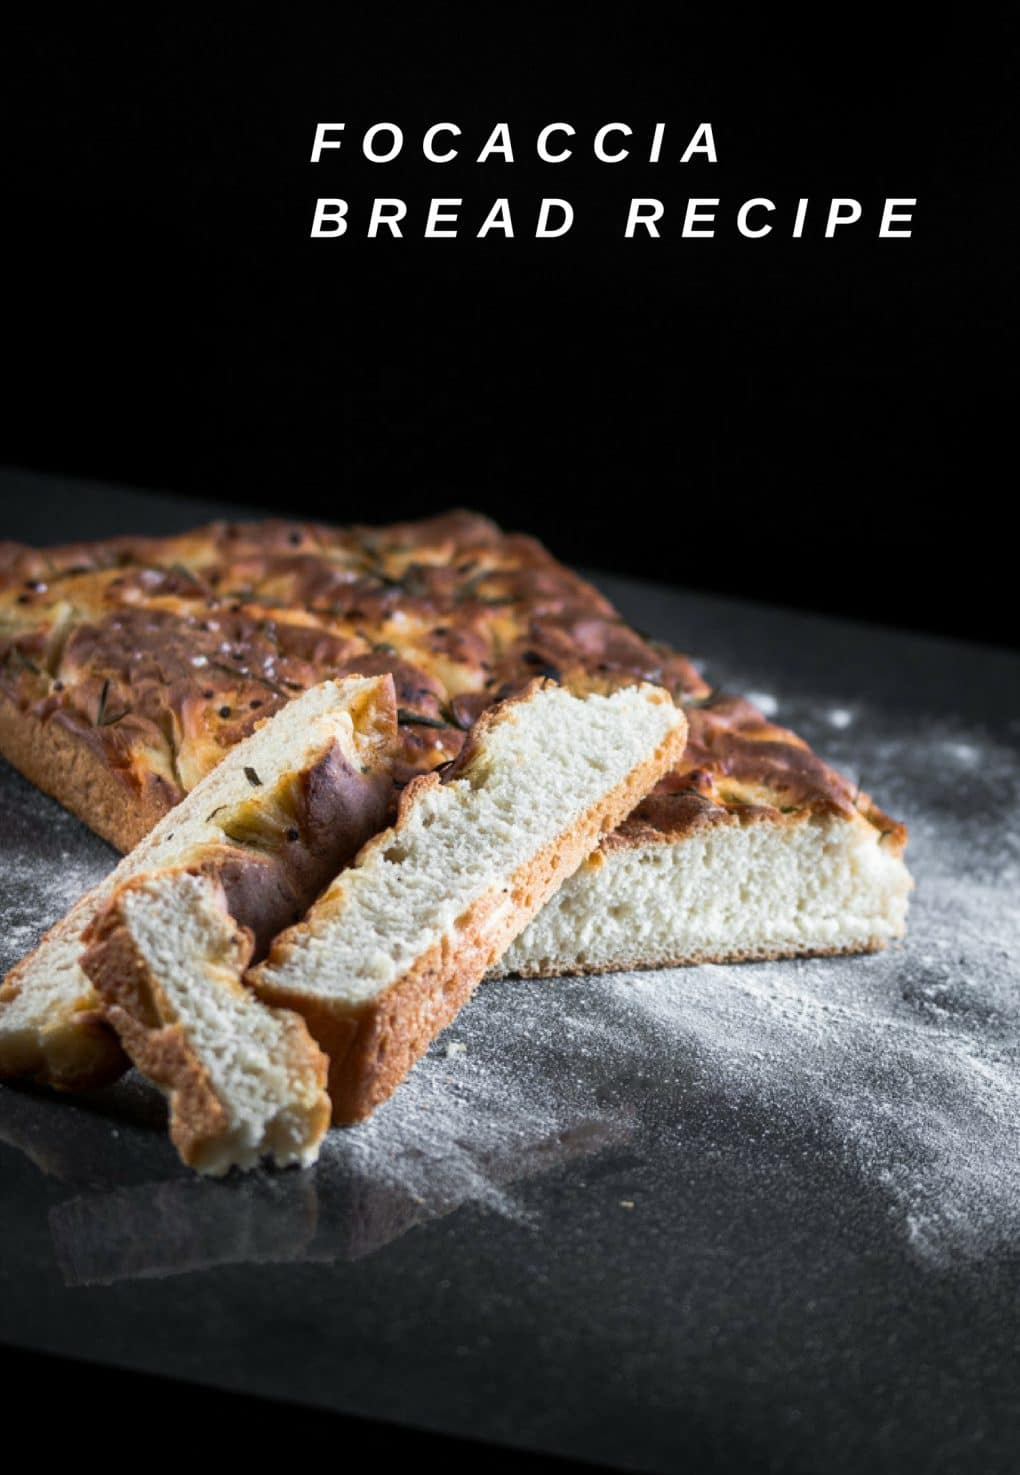 A focaccia bread recipe that is presented in the form of a pin for Pinterest.